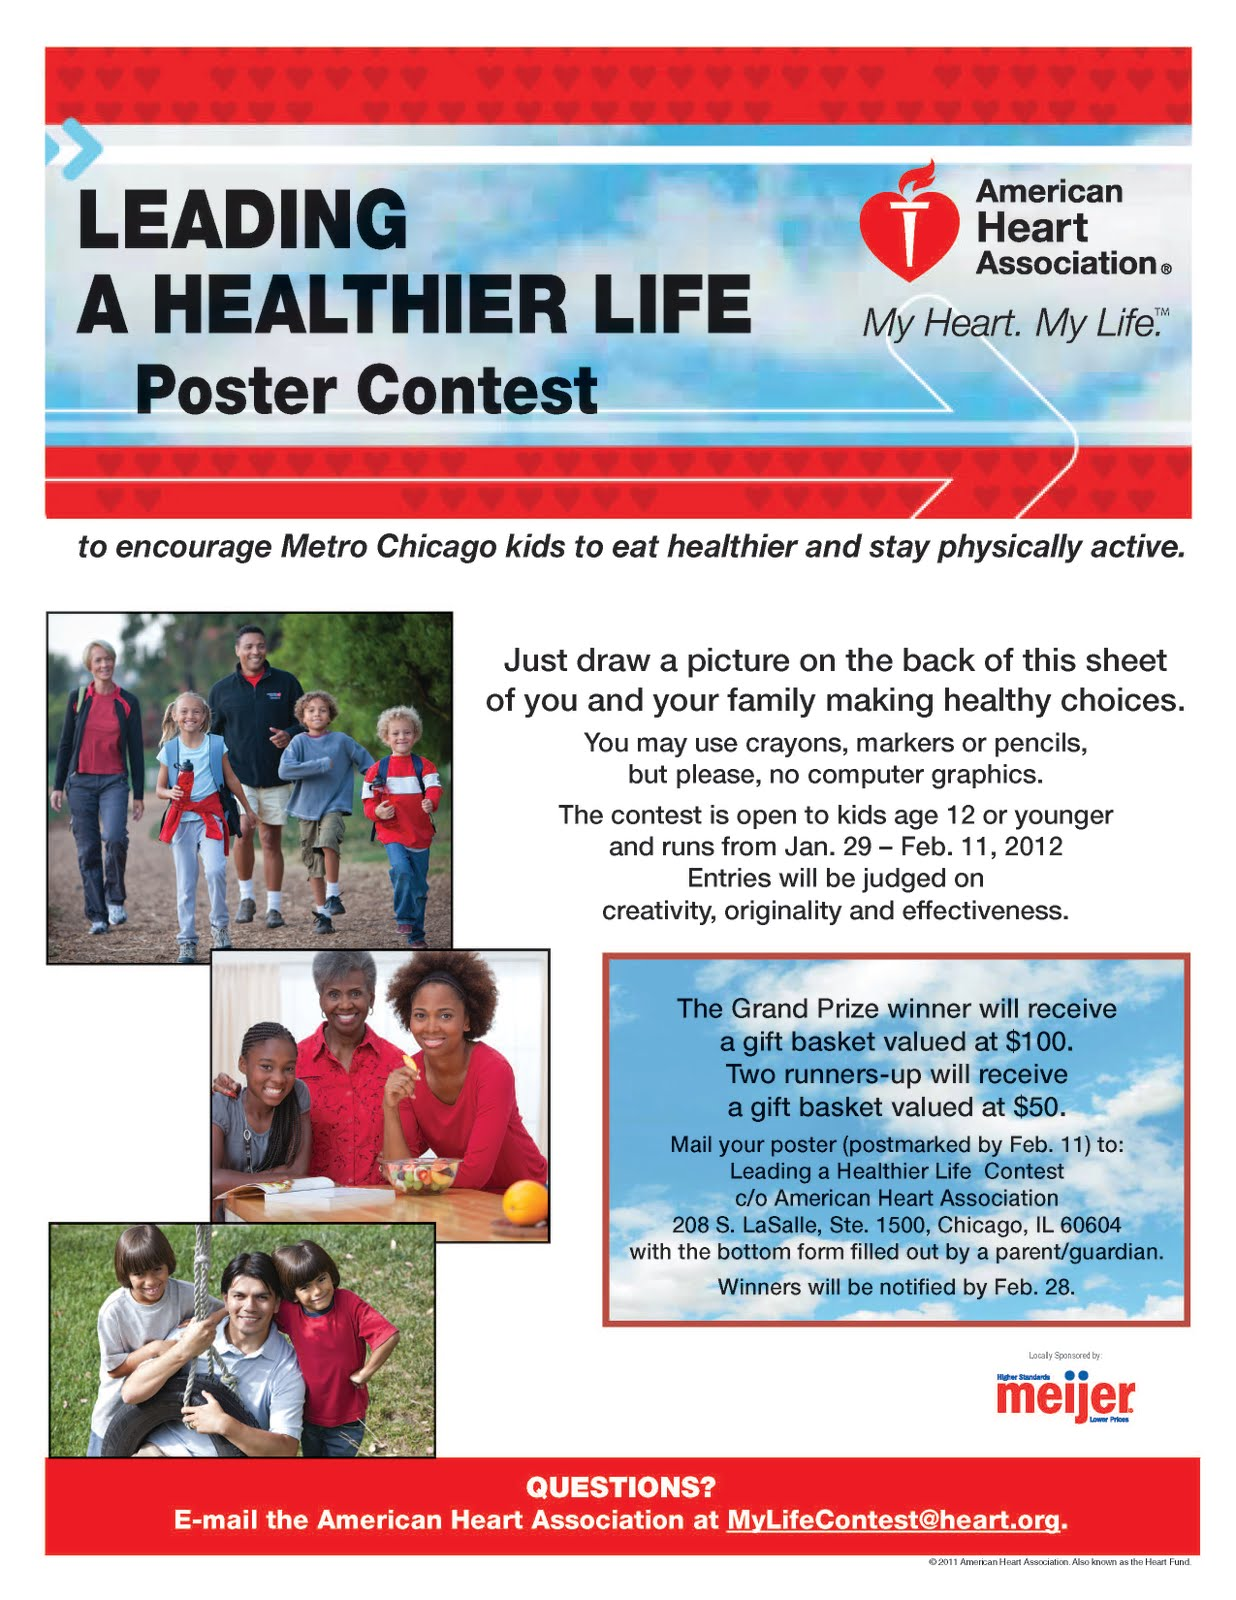 Meijer And AHA Healthy Living Poster Contest